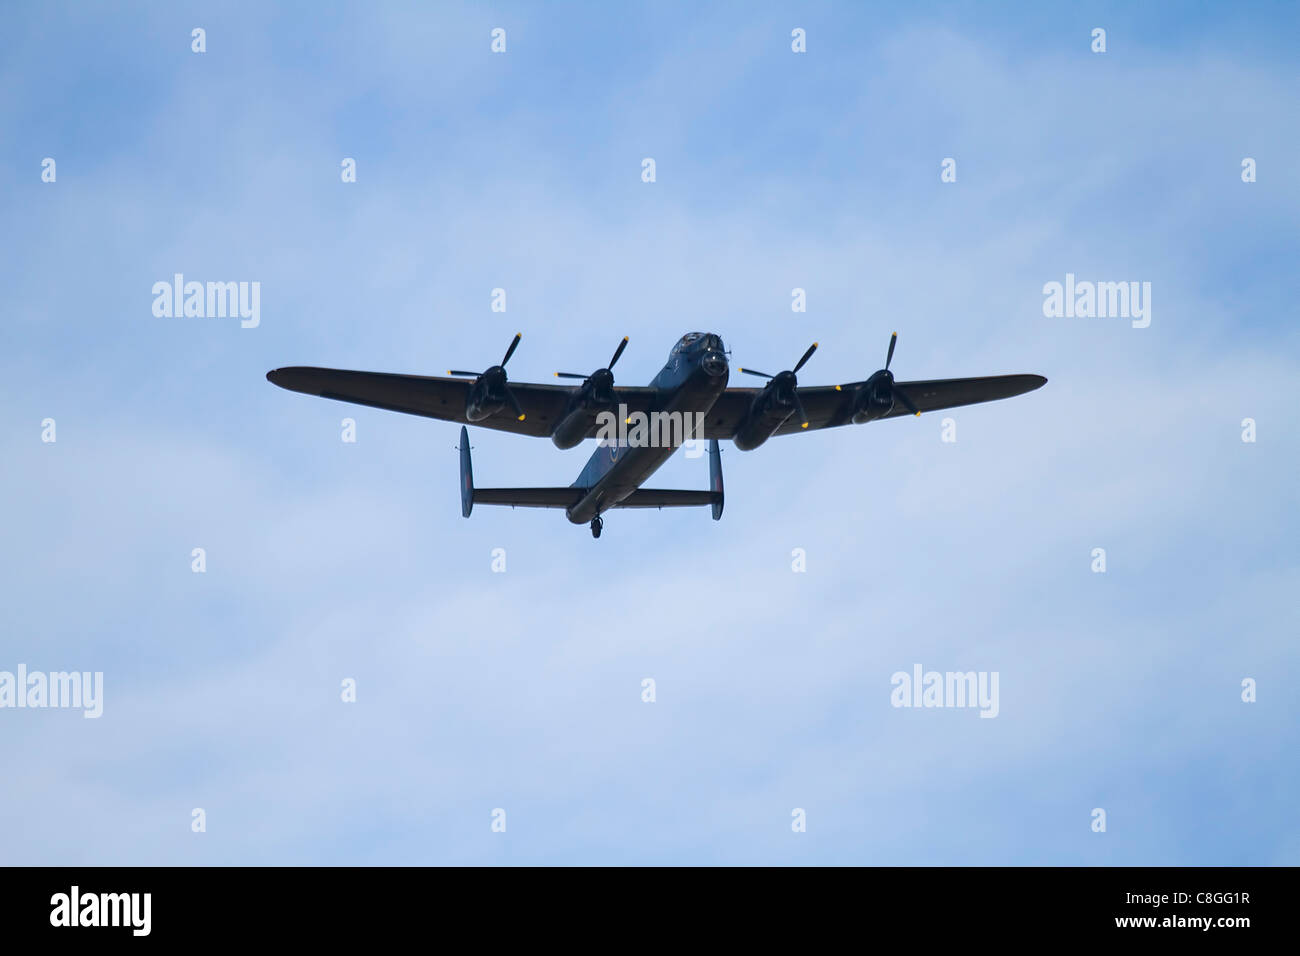 a restored WW2 lancaster bomber flying low - Stock Image